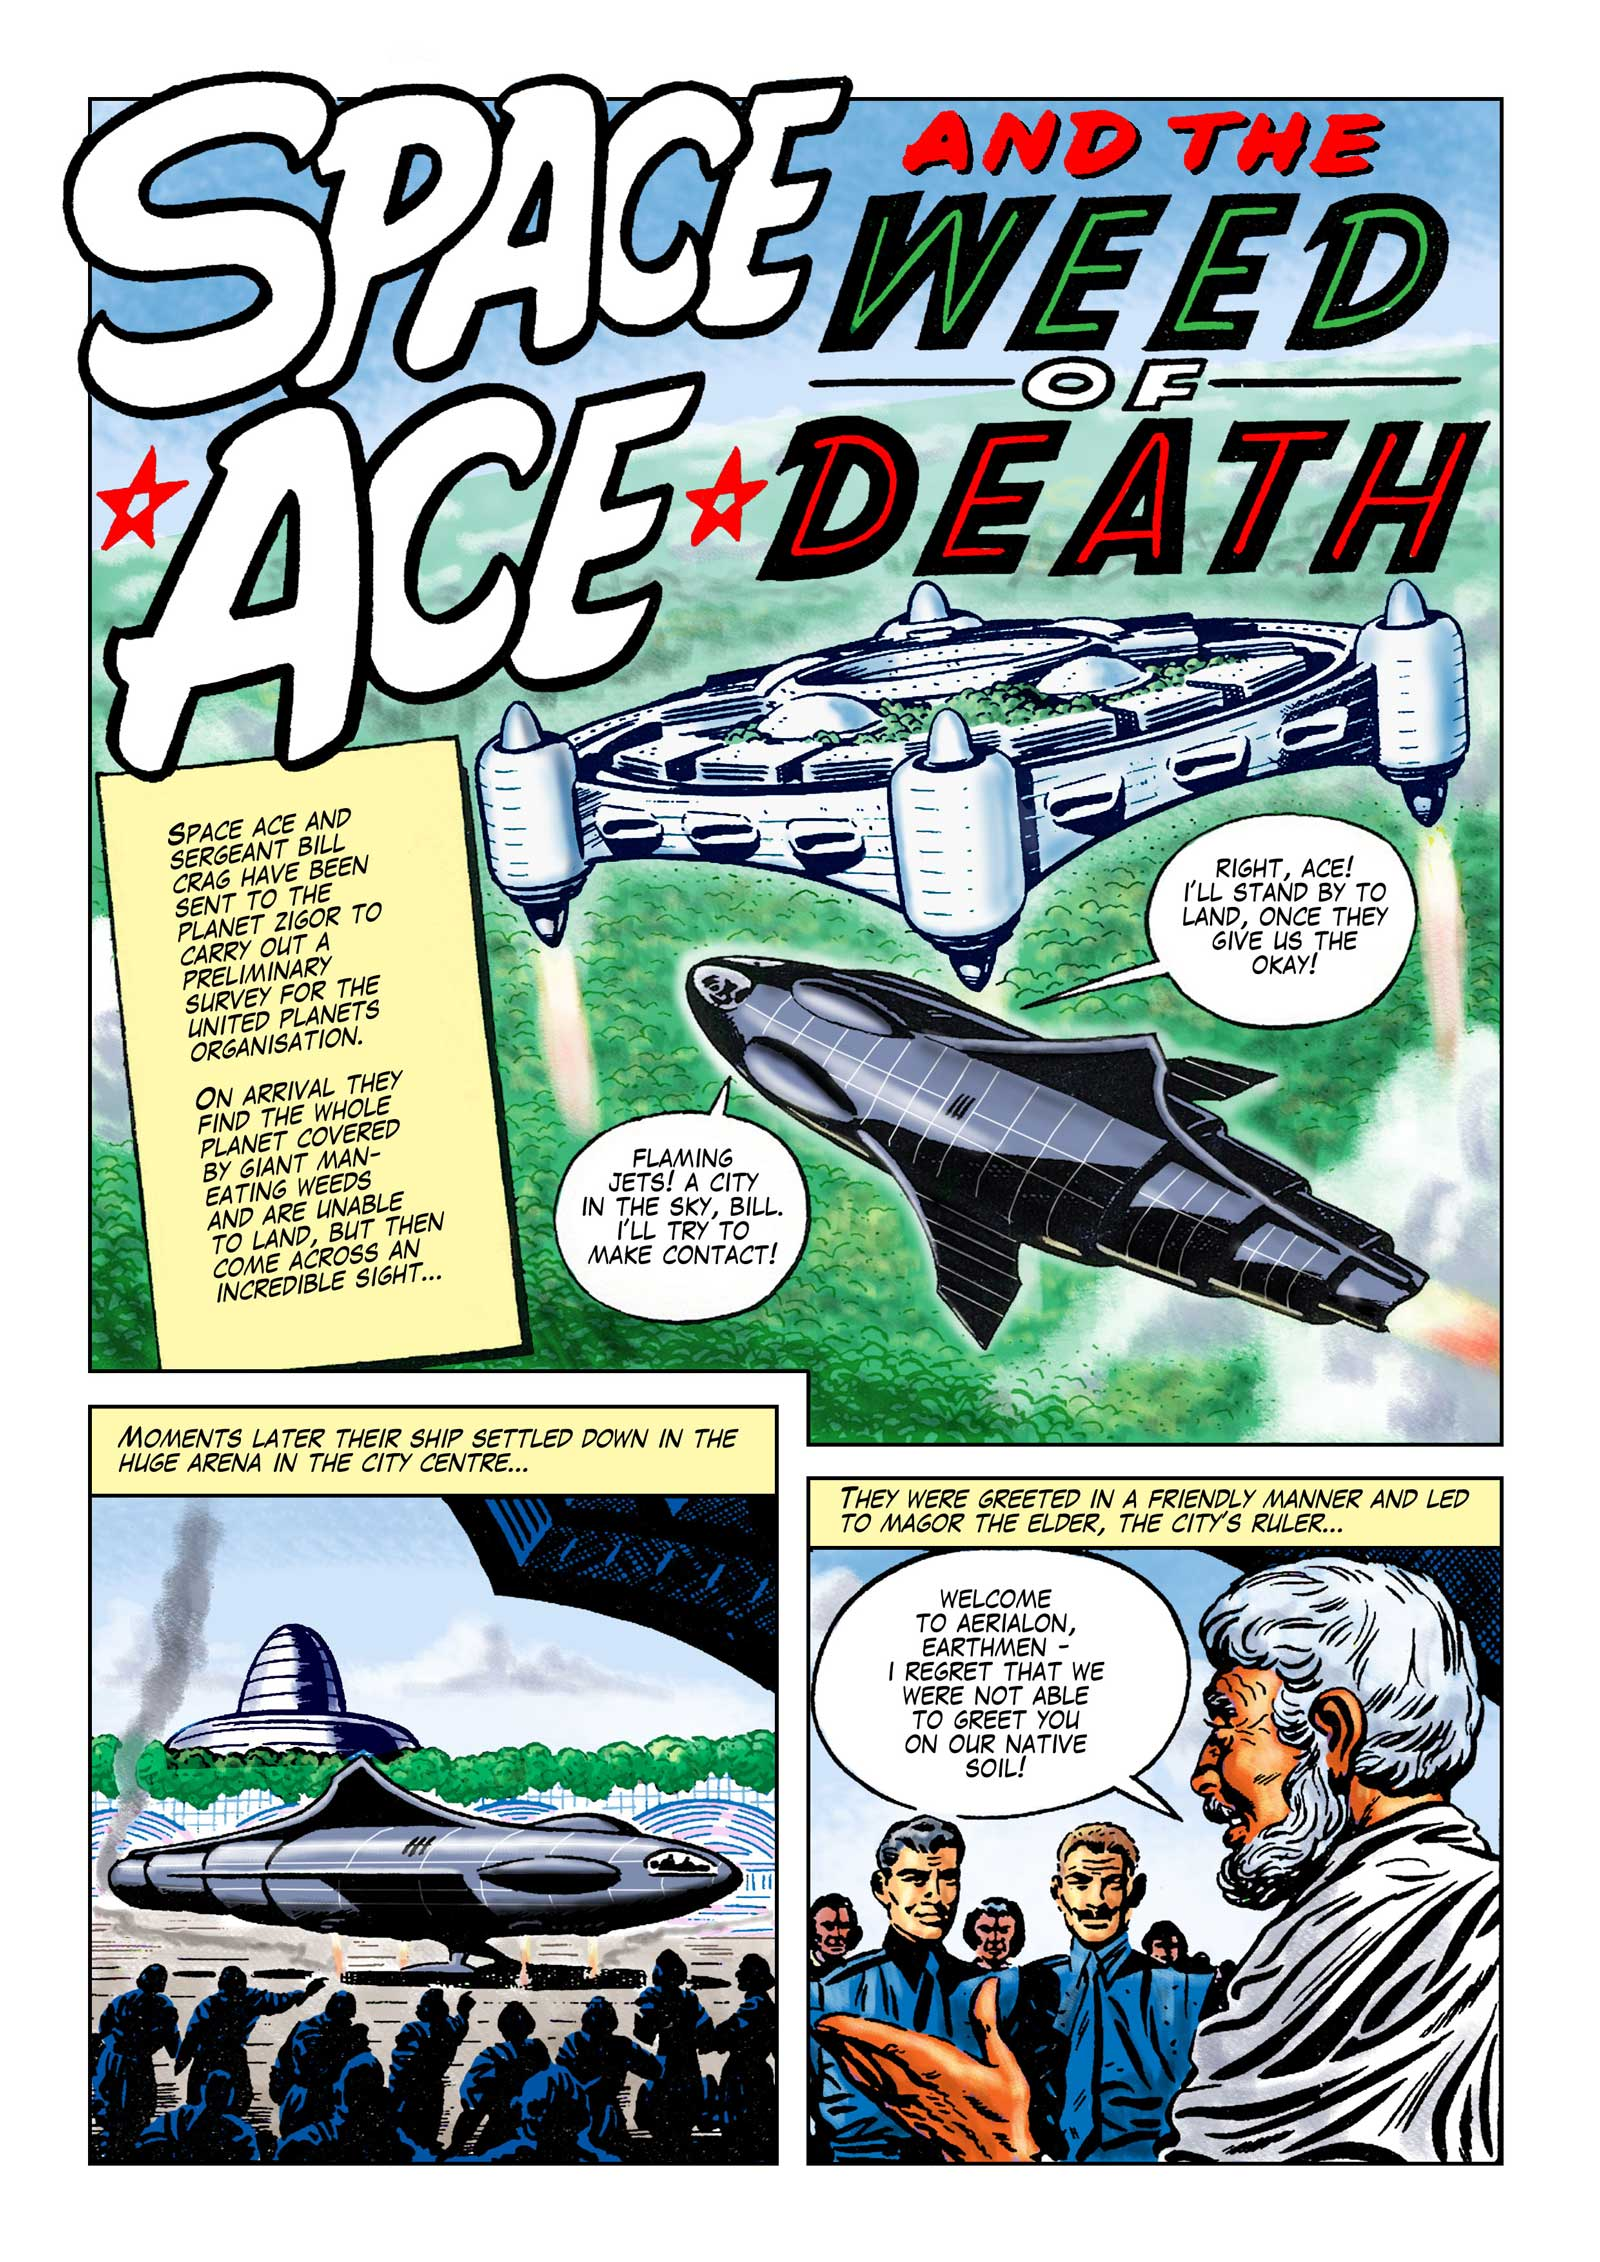 Space Ace Volume 9 - Weed of Death